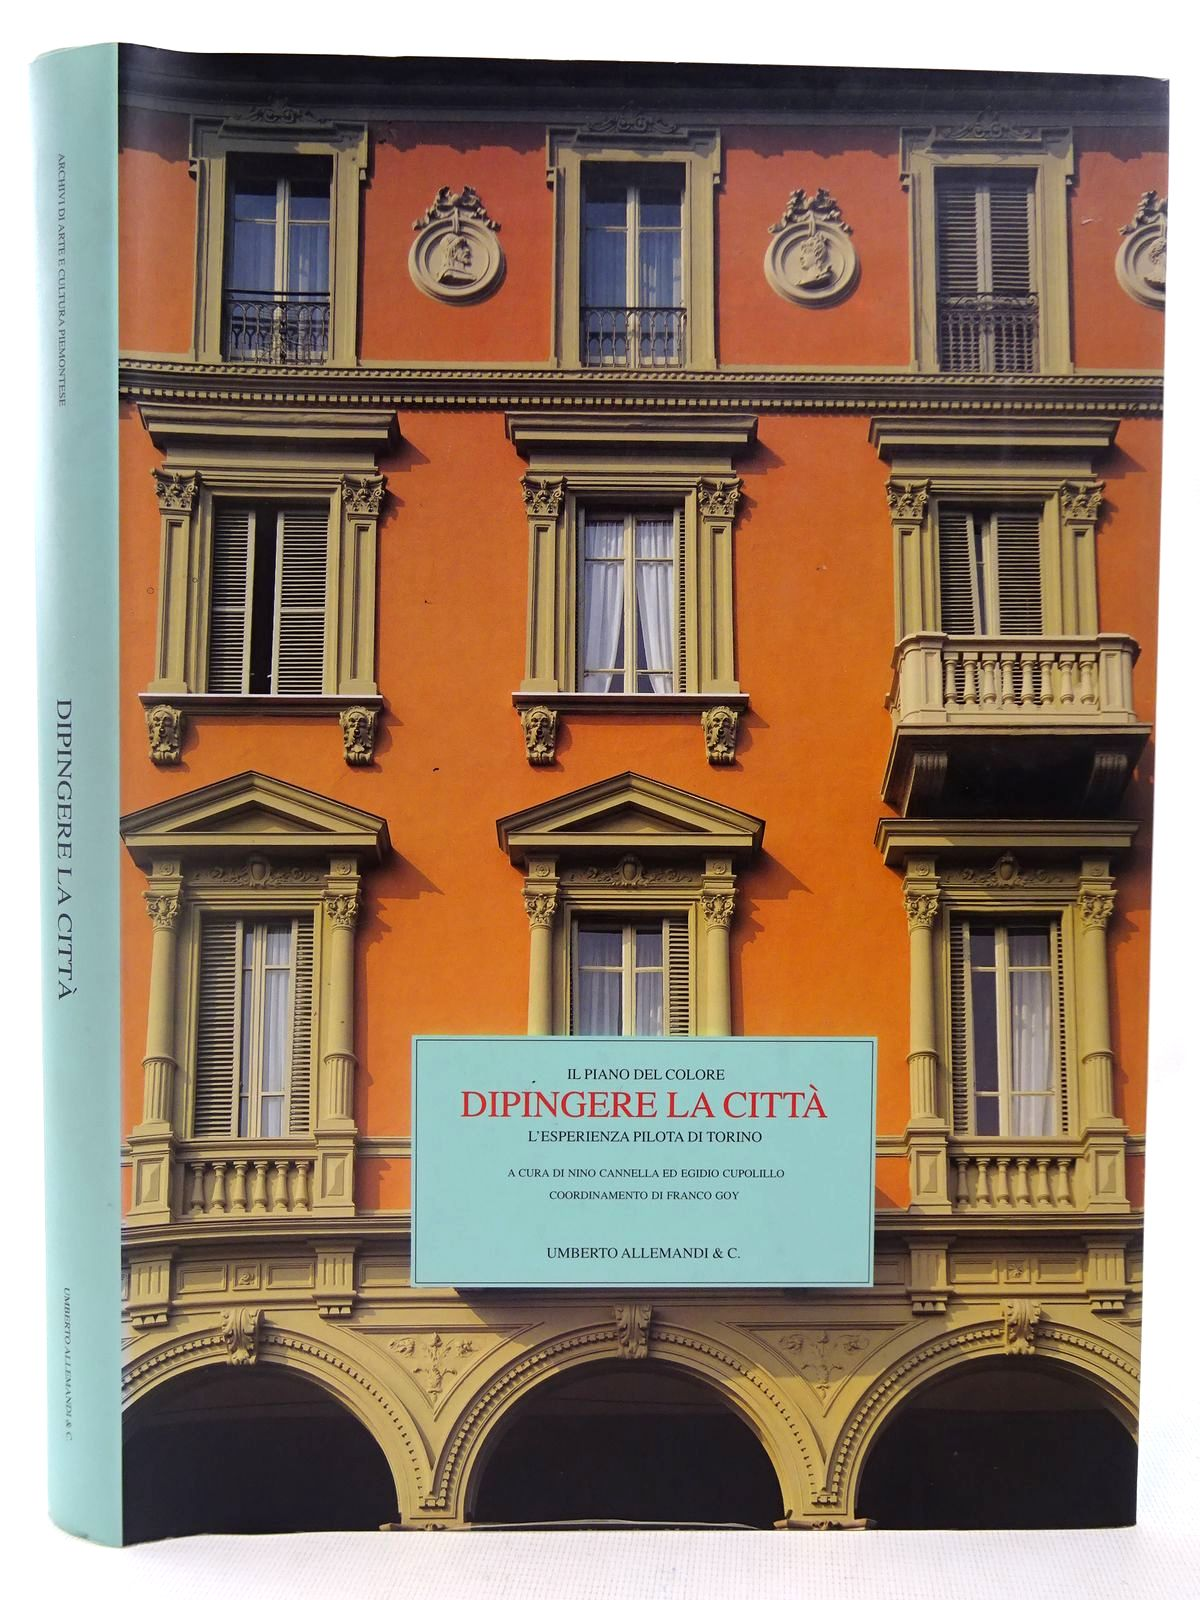 Photo of IL PIANO DEL COLORE DIPINGERE LA CITTA L'ESPERIENZA PILOTA DI TORNIO written by Cannella, Nino Cxupolillo, Ed Egidio Goy, Franco published by Umberto Allemandi & C. (STOCK CODE: 2127944)  for sale by Stella & Rose's Books